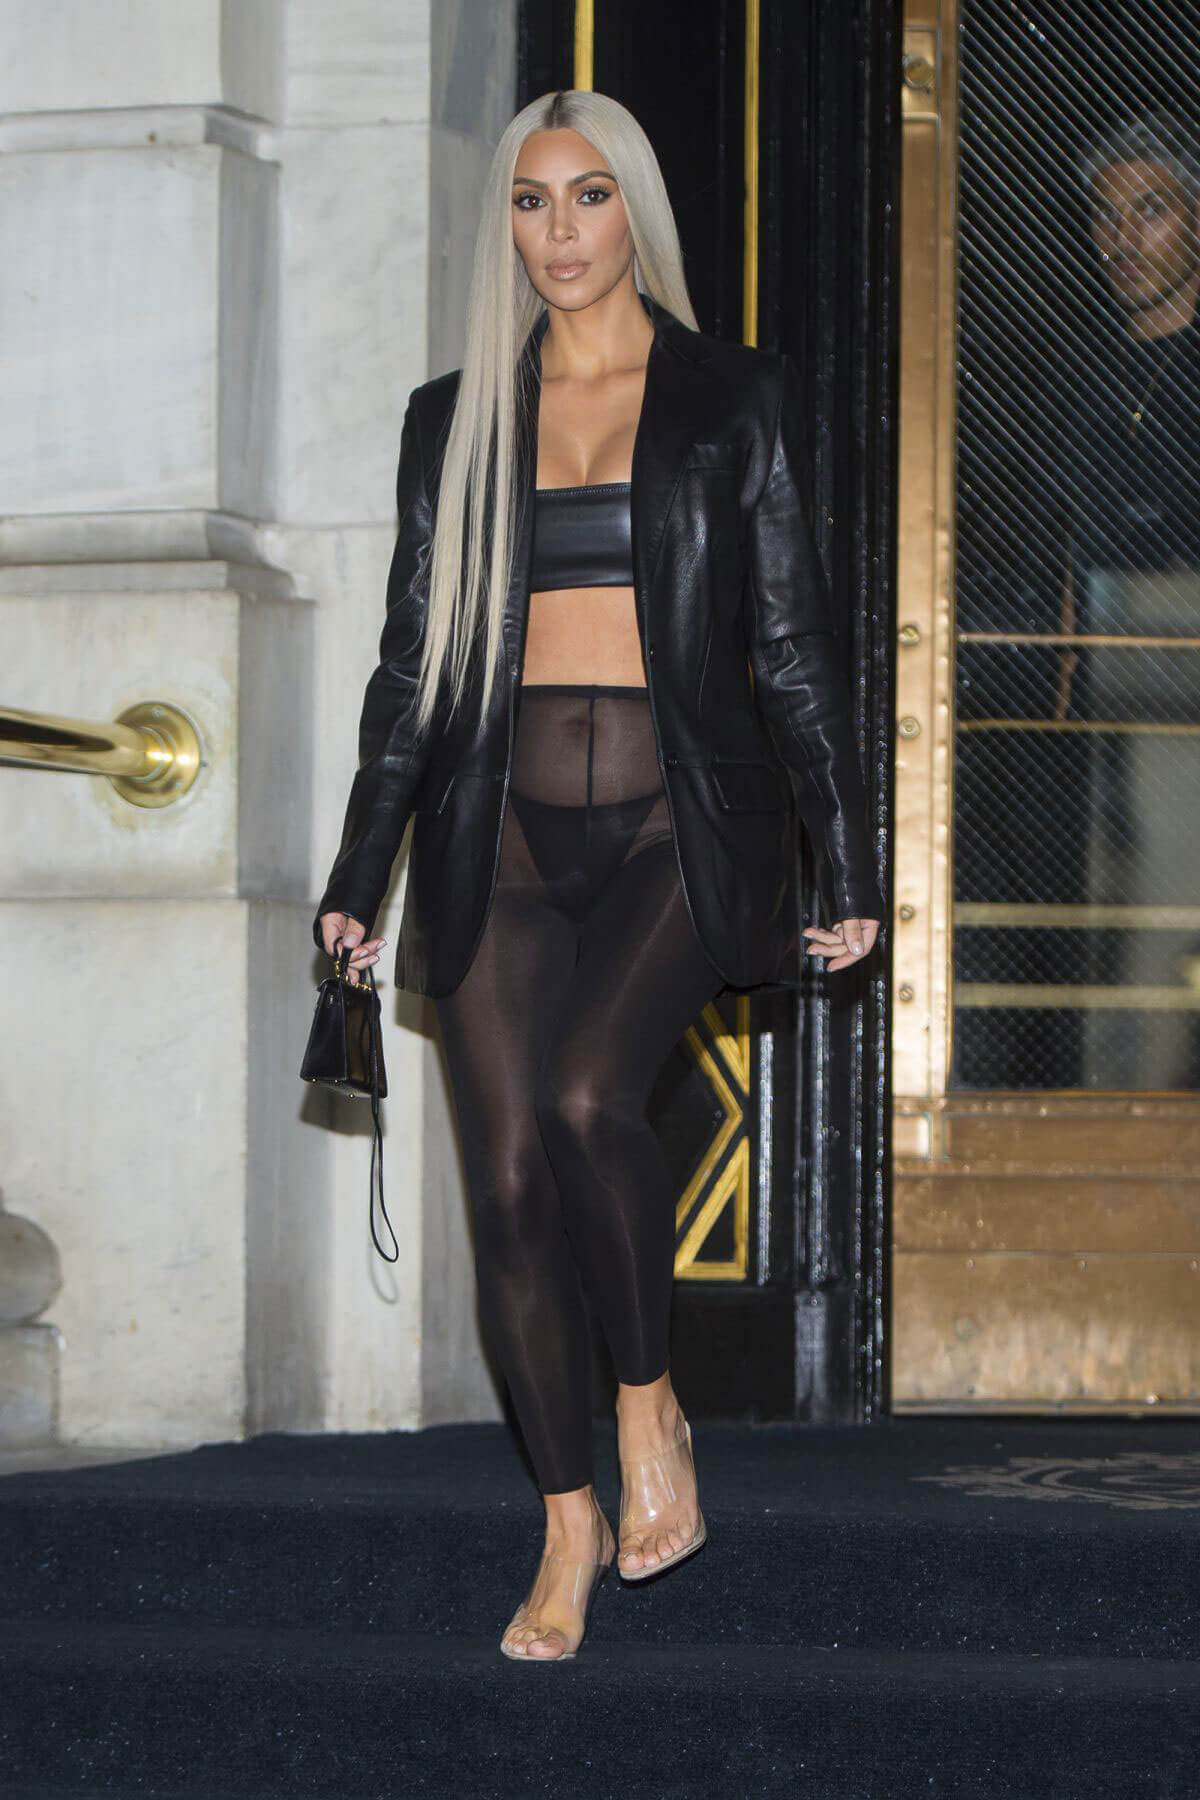 Kim Kardashian Wears Transparent Leggings Out And About In